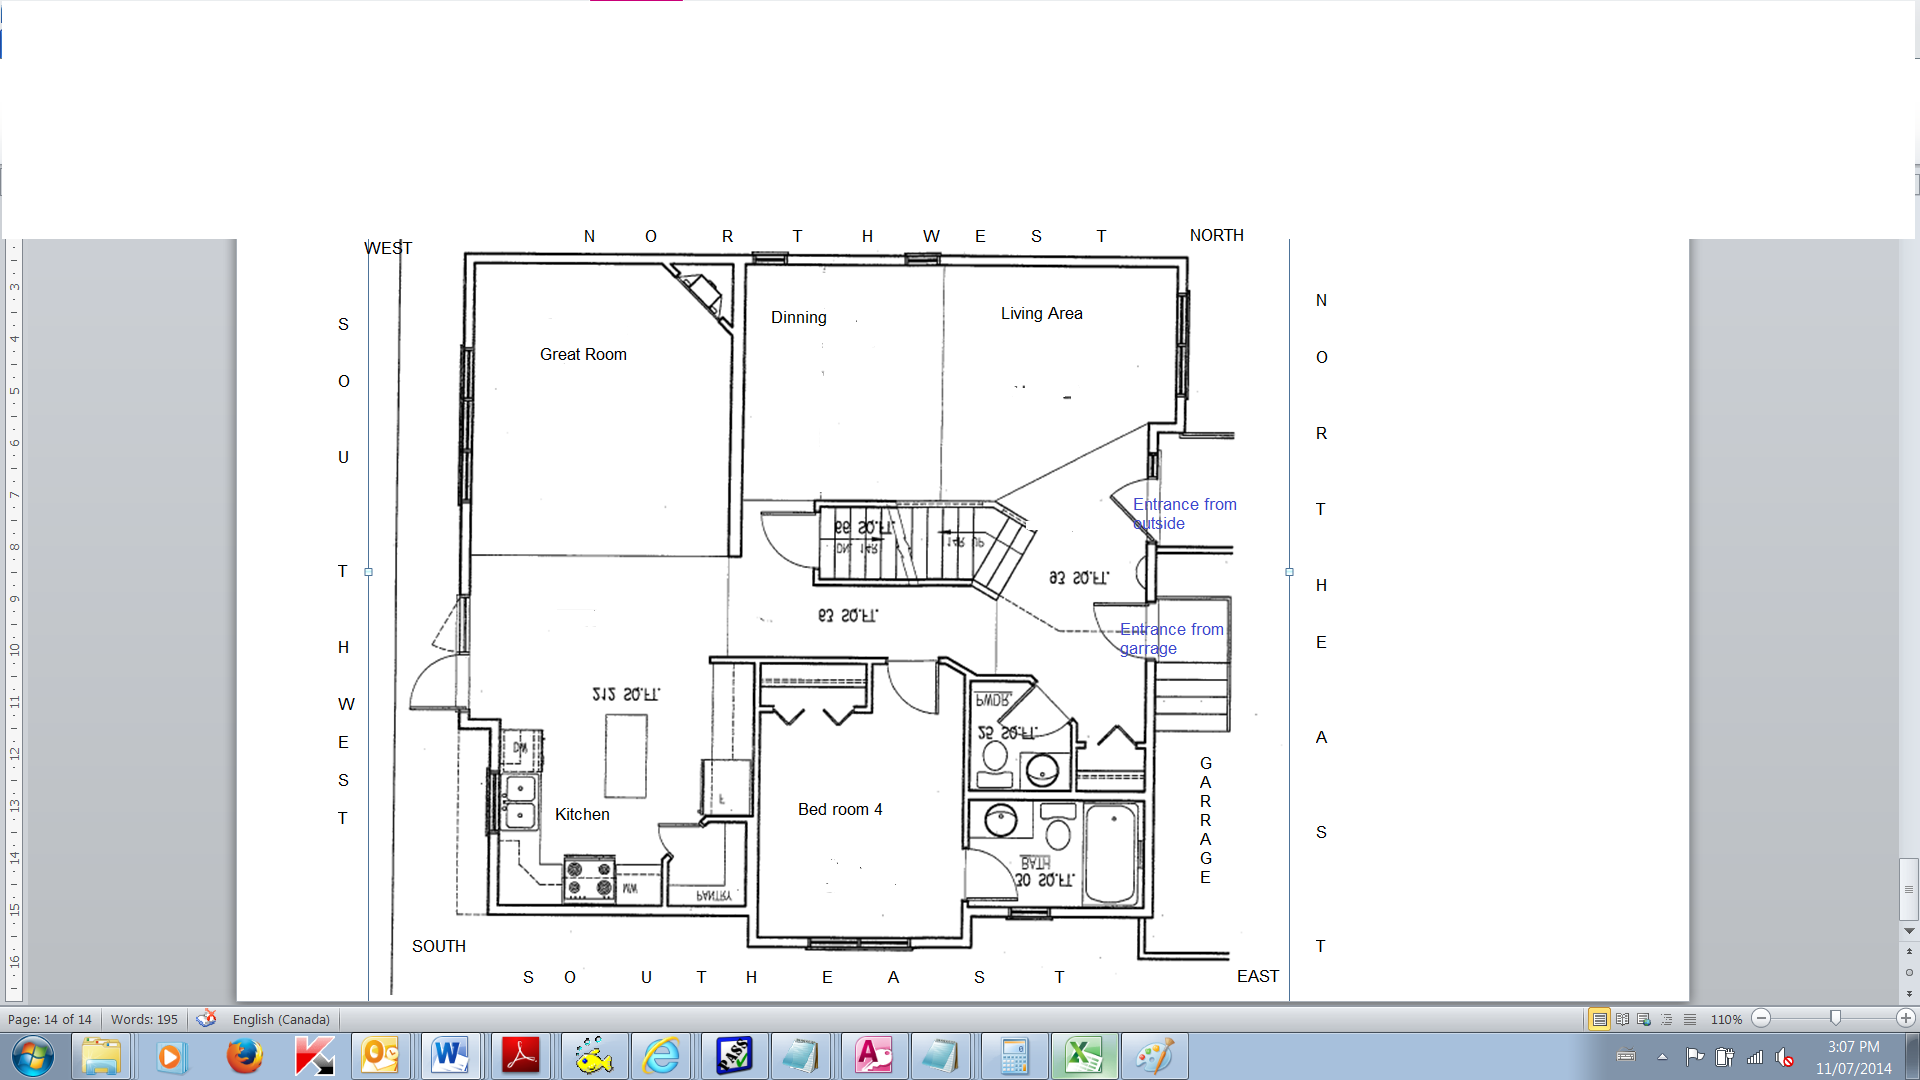 Main Best House Plan North And East on oxford houses, north india houses, north california houses, north field houses, north west houses, north cyprus houses, north florida houses, colonial boston houses, north eastern houses,